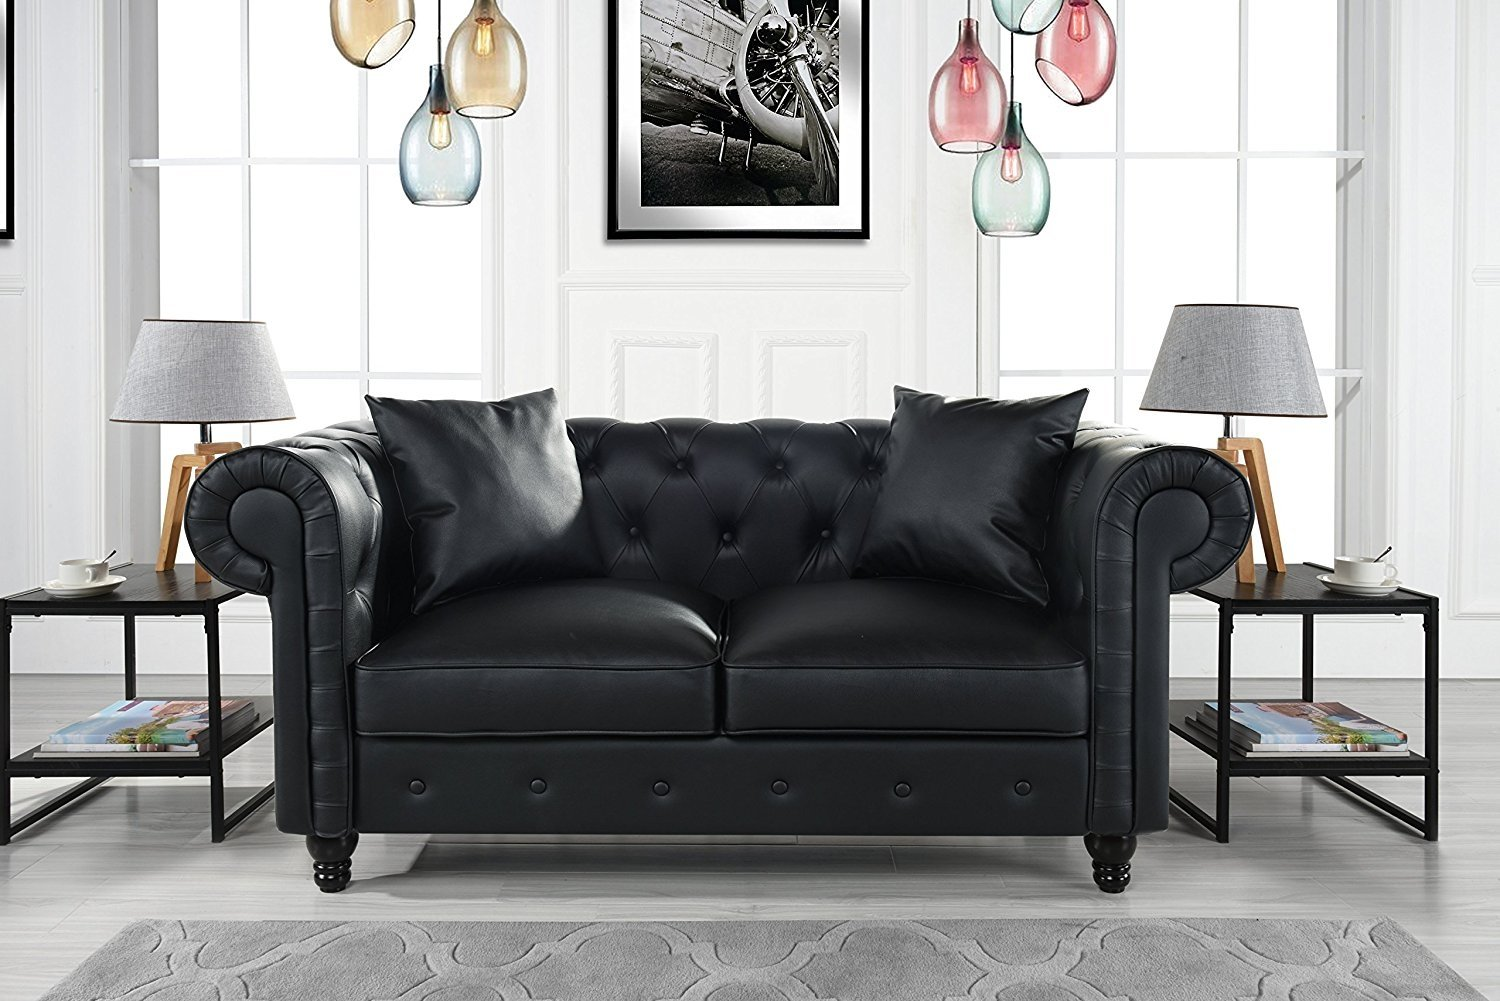 Divano Roma Furniture Classic Living Room Bonded Leather Scroll Arm Chesterfield Loveseat (Black) by Divano Roma Furniture